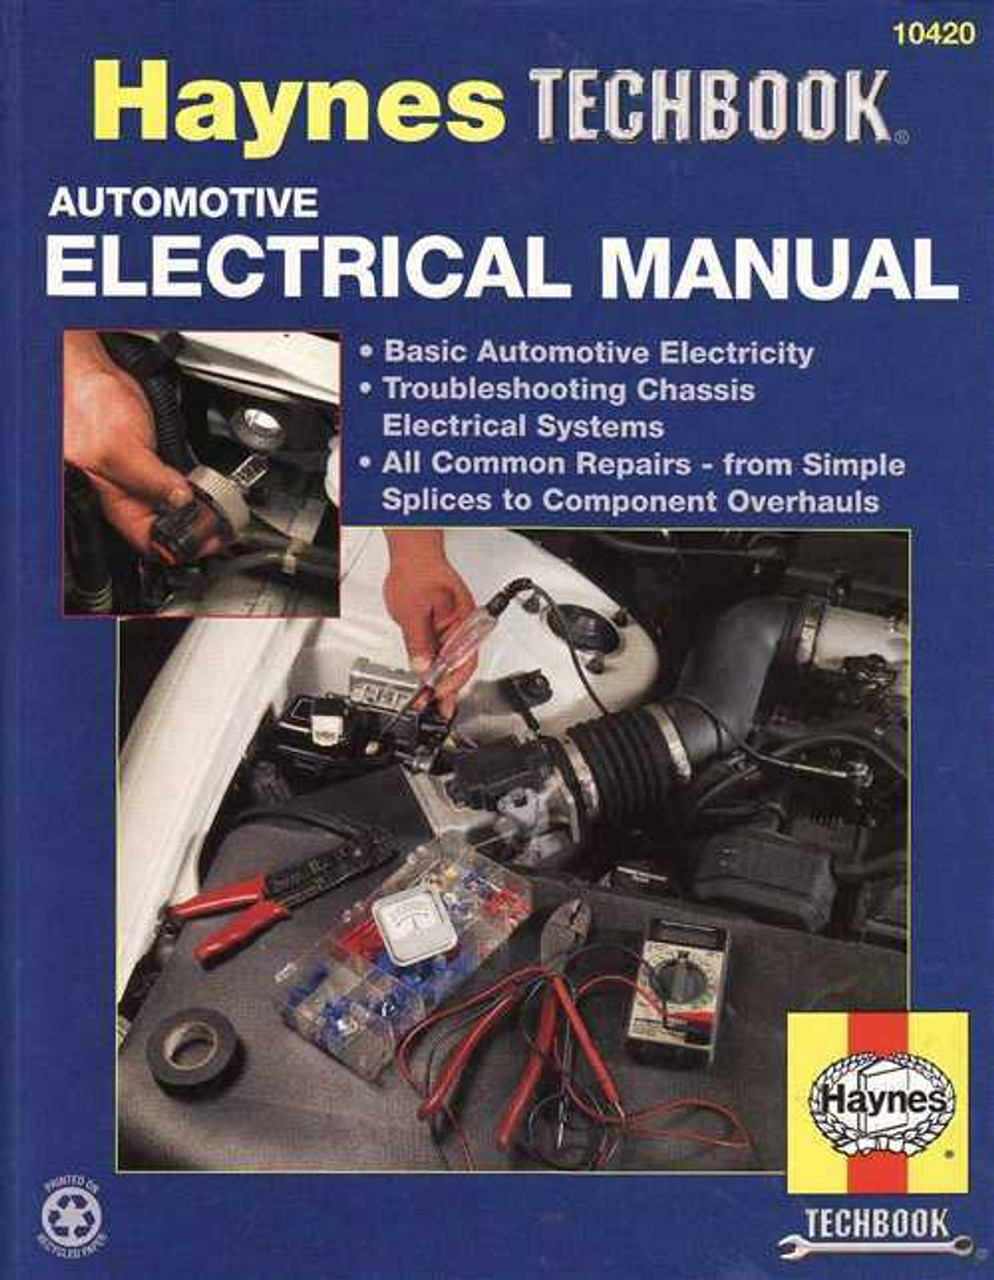 Pleasant Automotive Electrical Manual Haynes Techbook Wiring Cloud Tobiqorsaluggs Outletorg